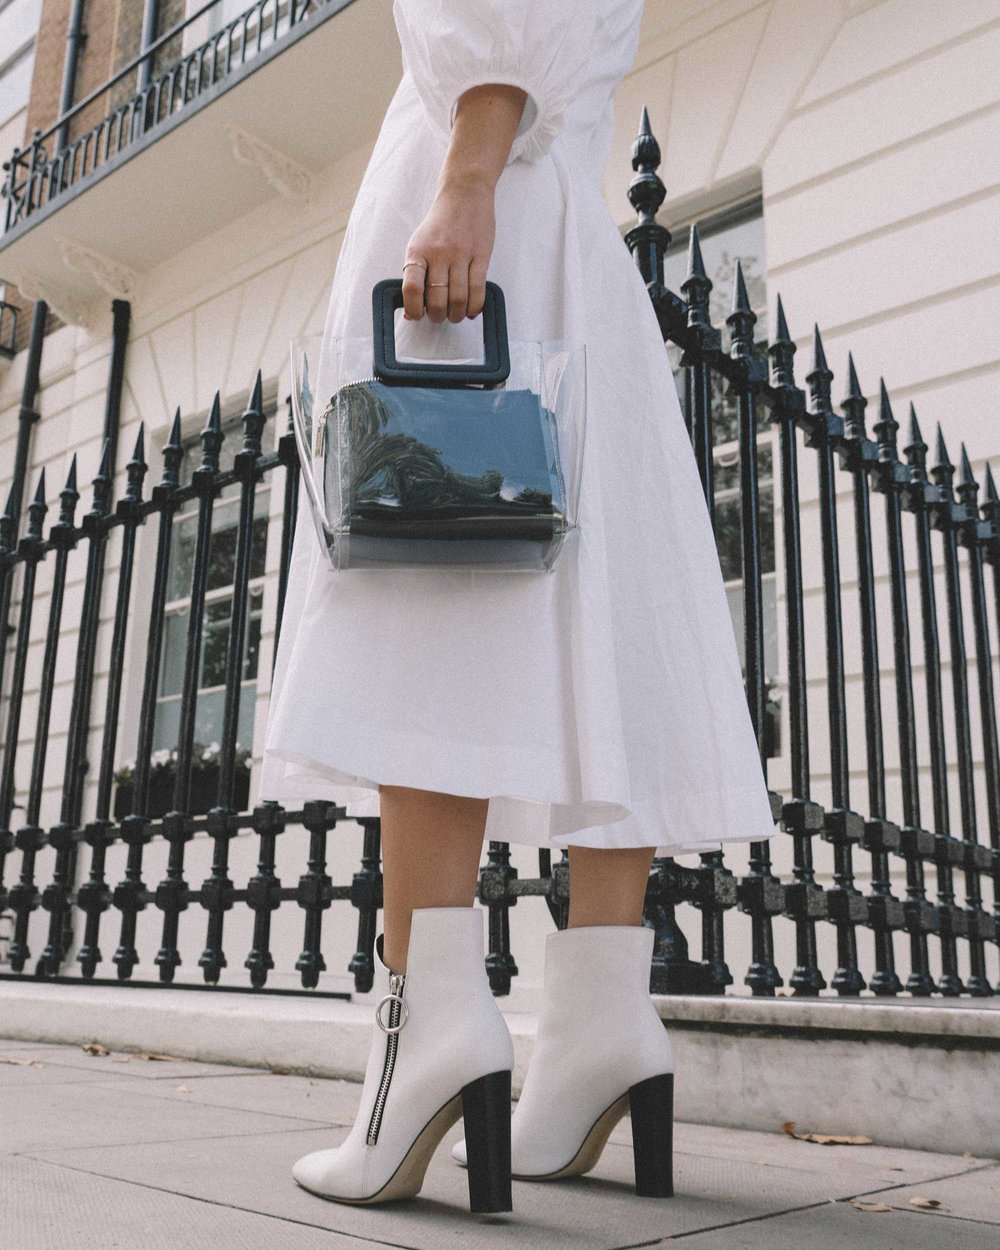 STAUD Eden Midi Dress, STAUD clear and black shirley mini PVC and leather tote, London Fashion Week Outfit6.jpg